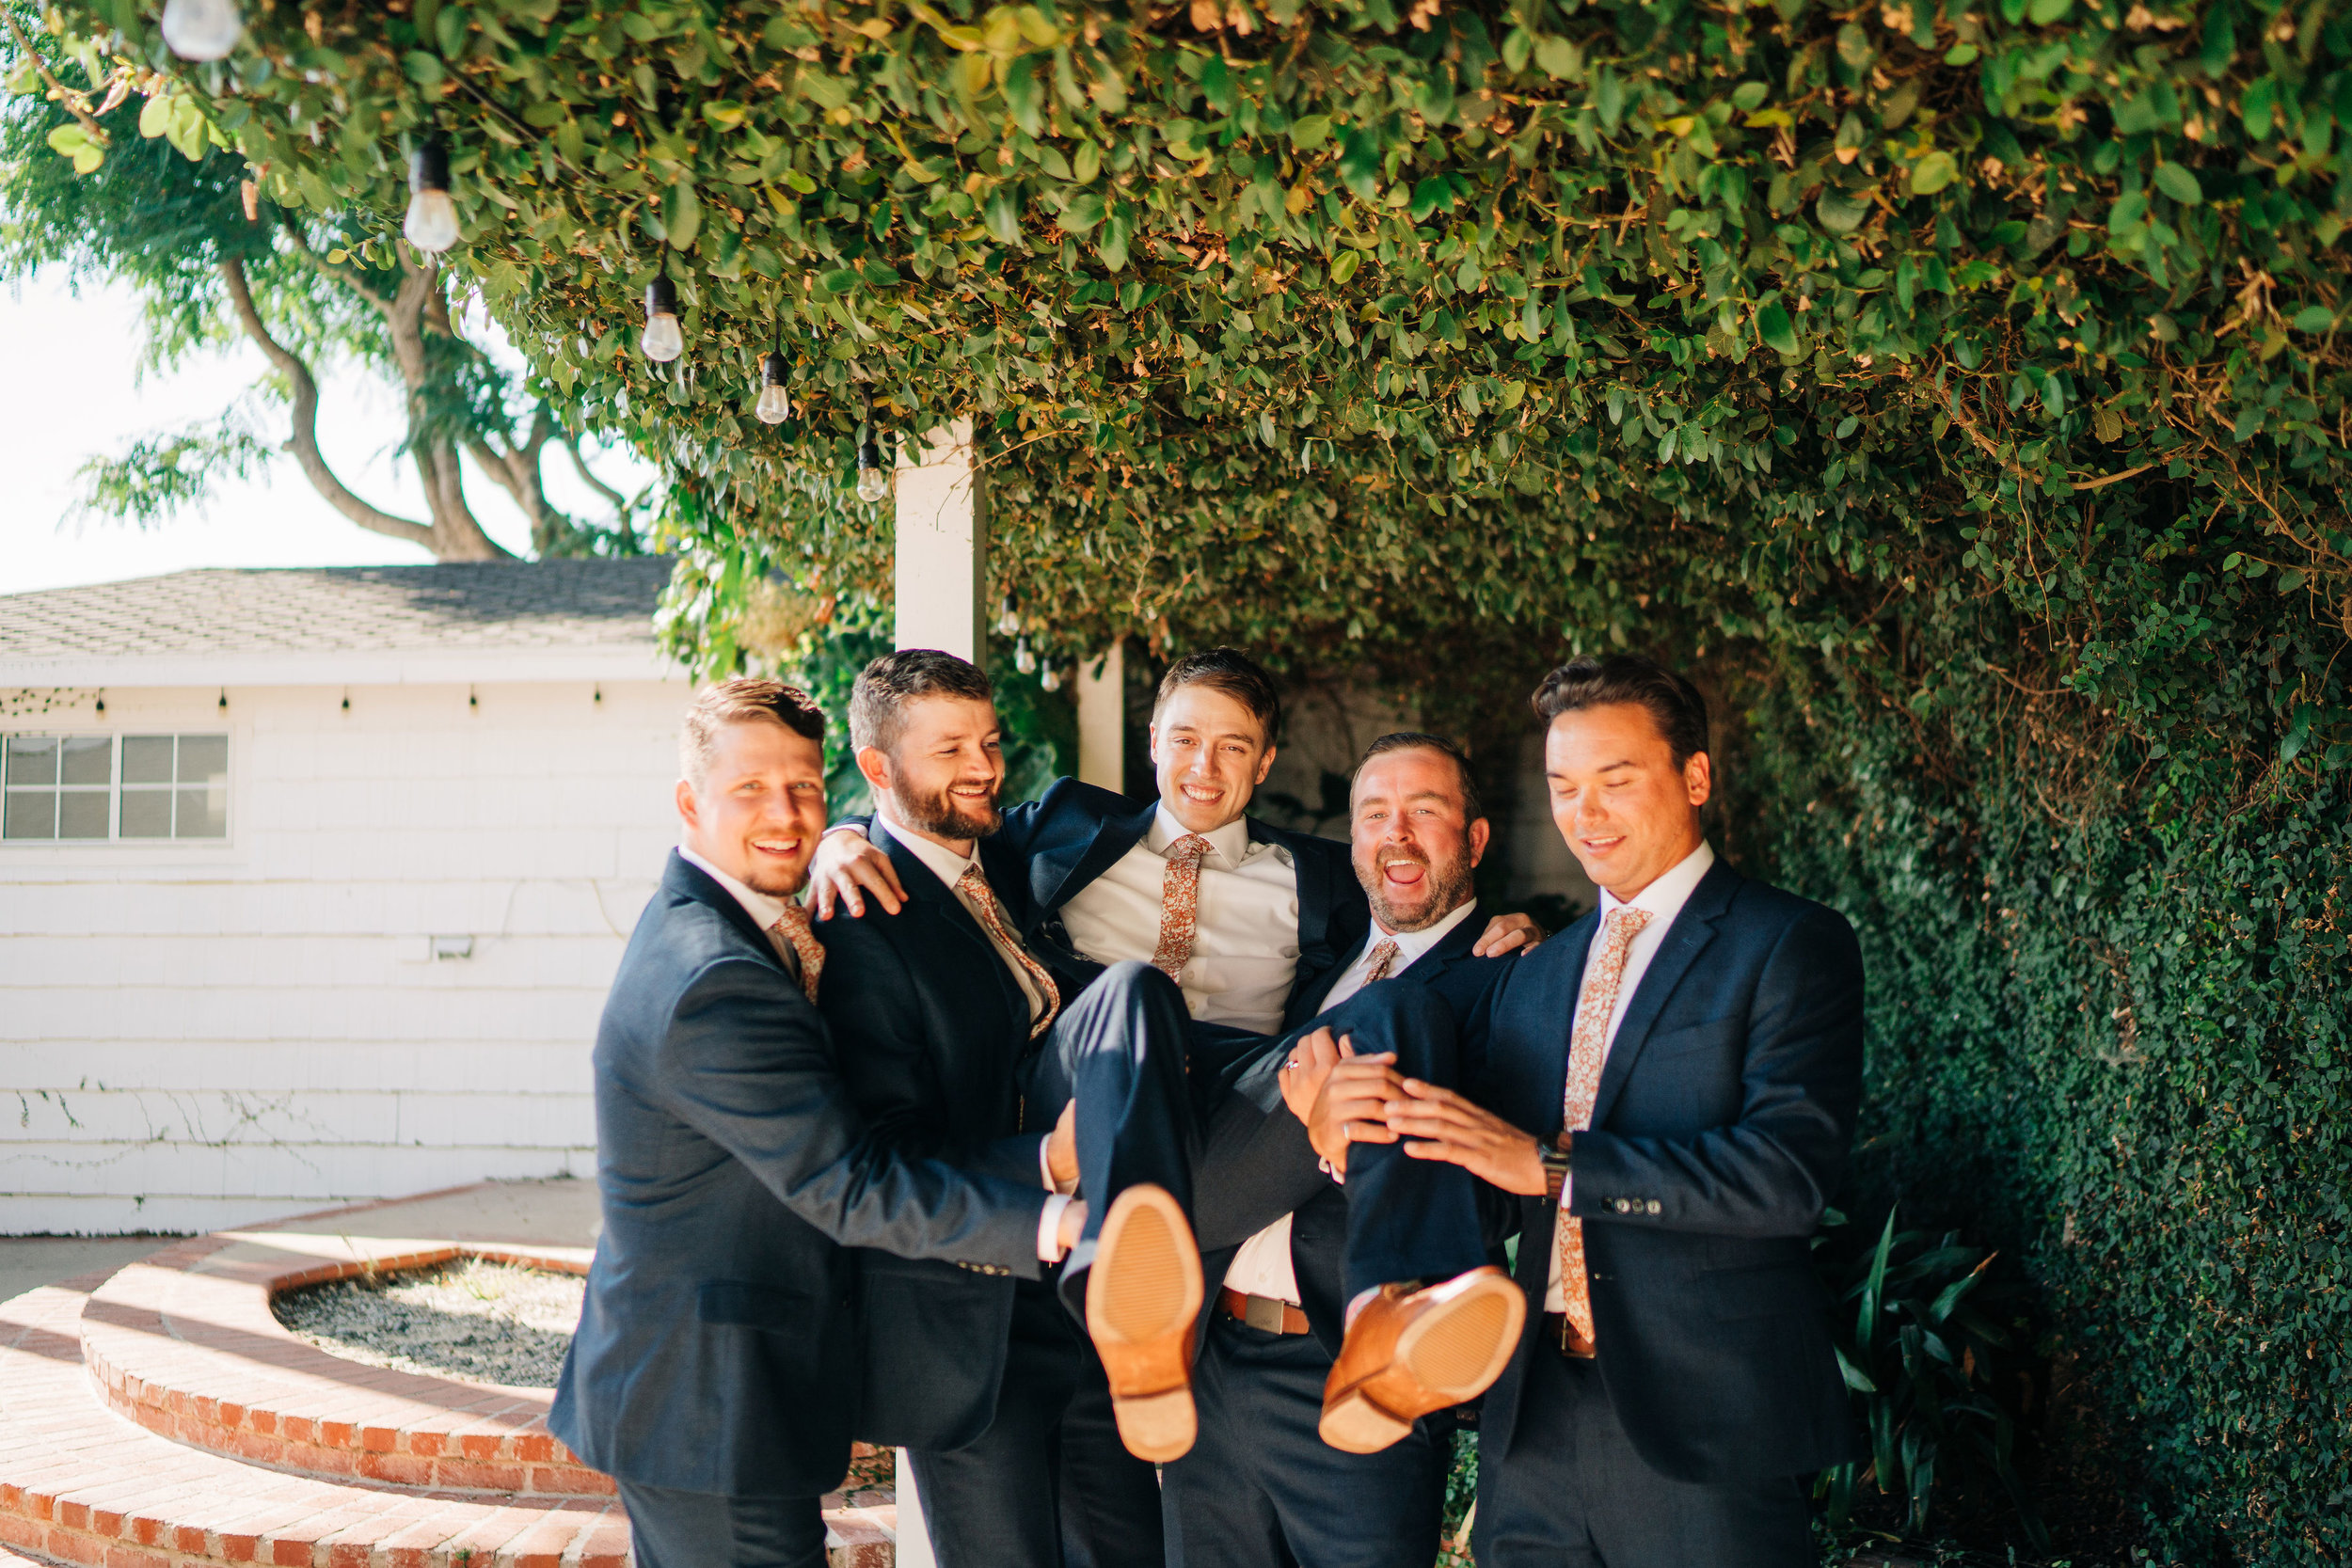 allie-shupe-tyler-wiggins-wedding-santa-barbara 033.jpg